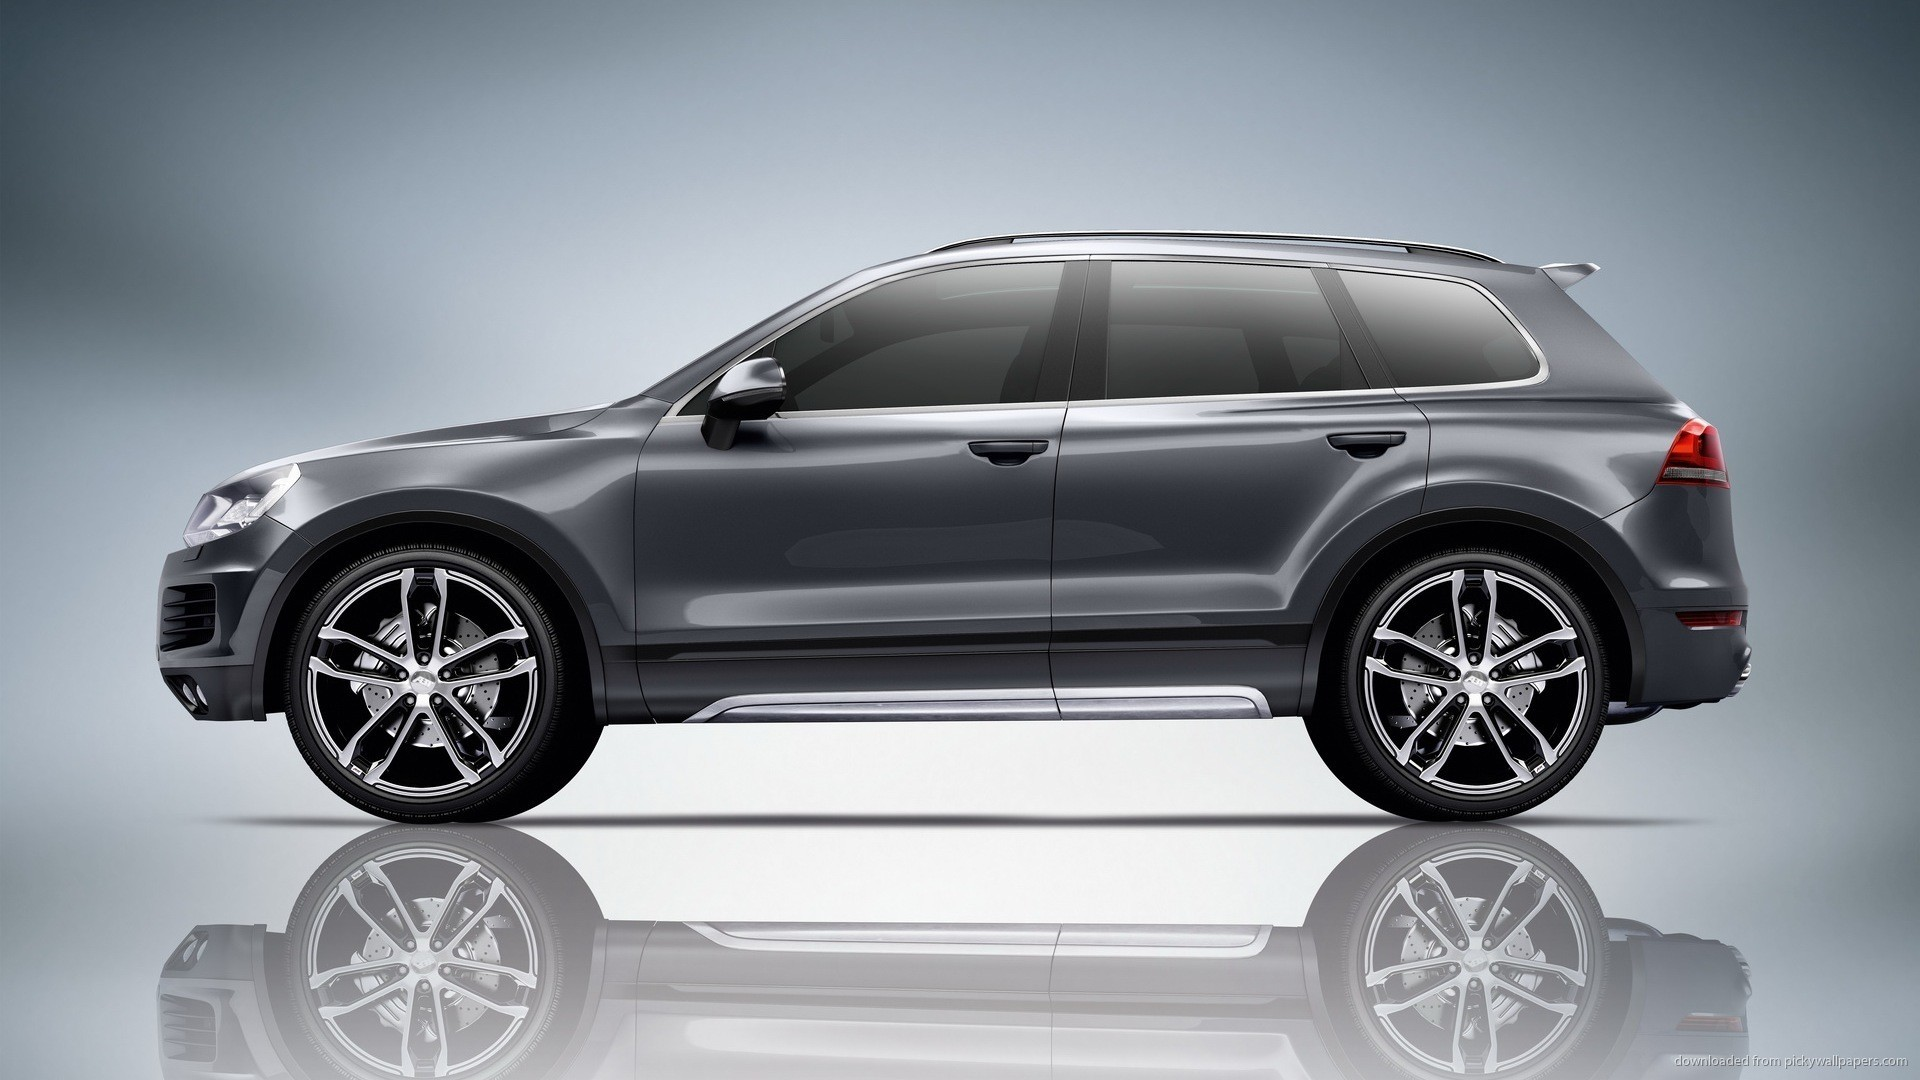 Volkswagen Touareg Side View Wallpaper picture